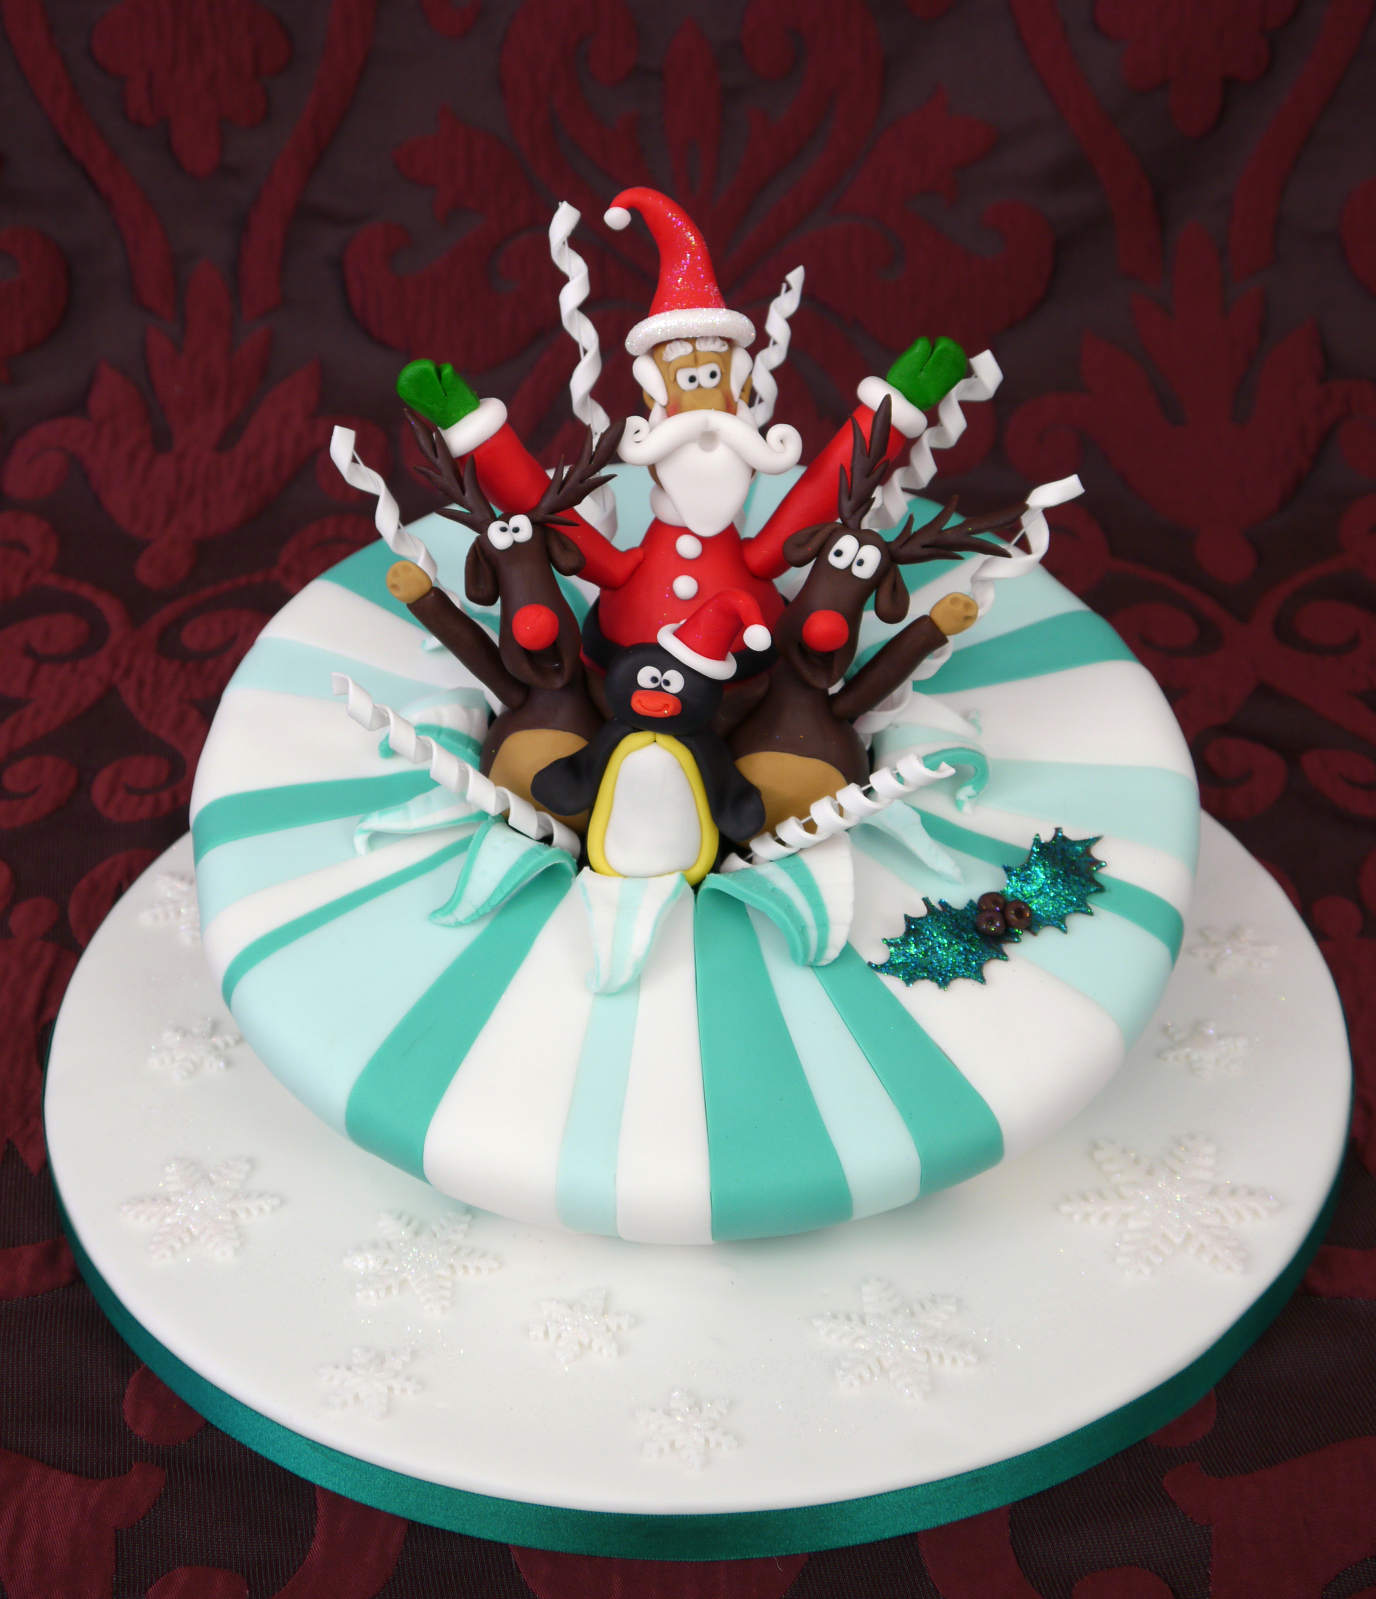 Cake Decorating Party Ideas : Christmas Cakes   Decoration Ideas Little Birthday Cakes